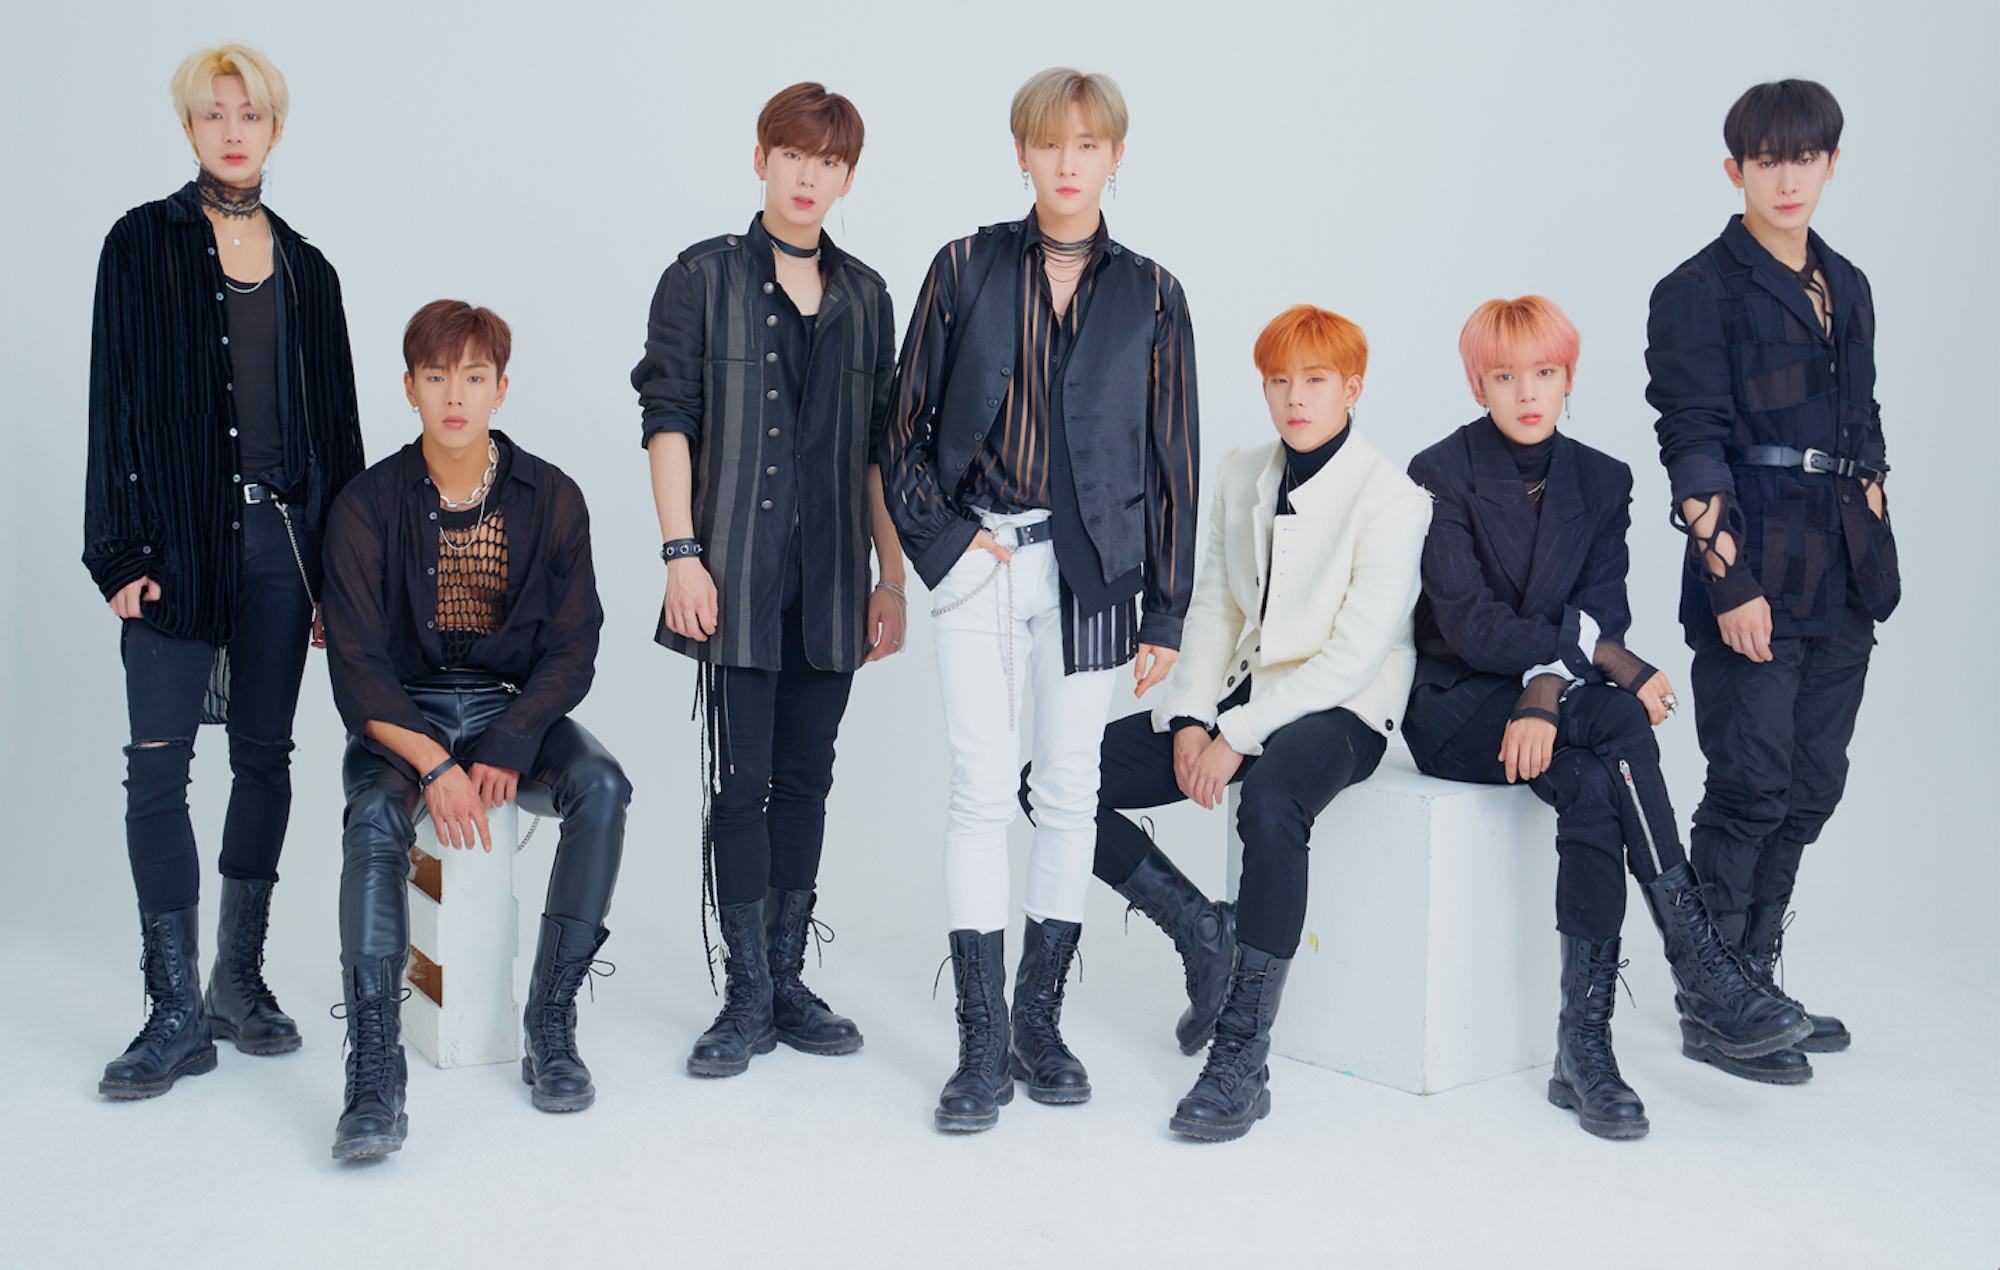 Monsta X channel 90s boybands in their video for 'Someone's Someone'